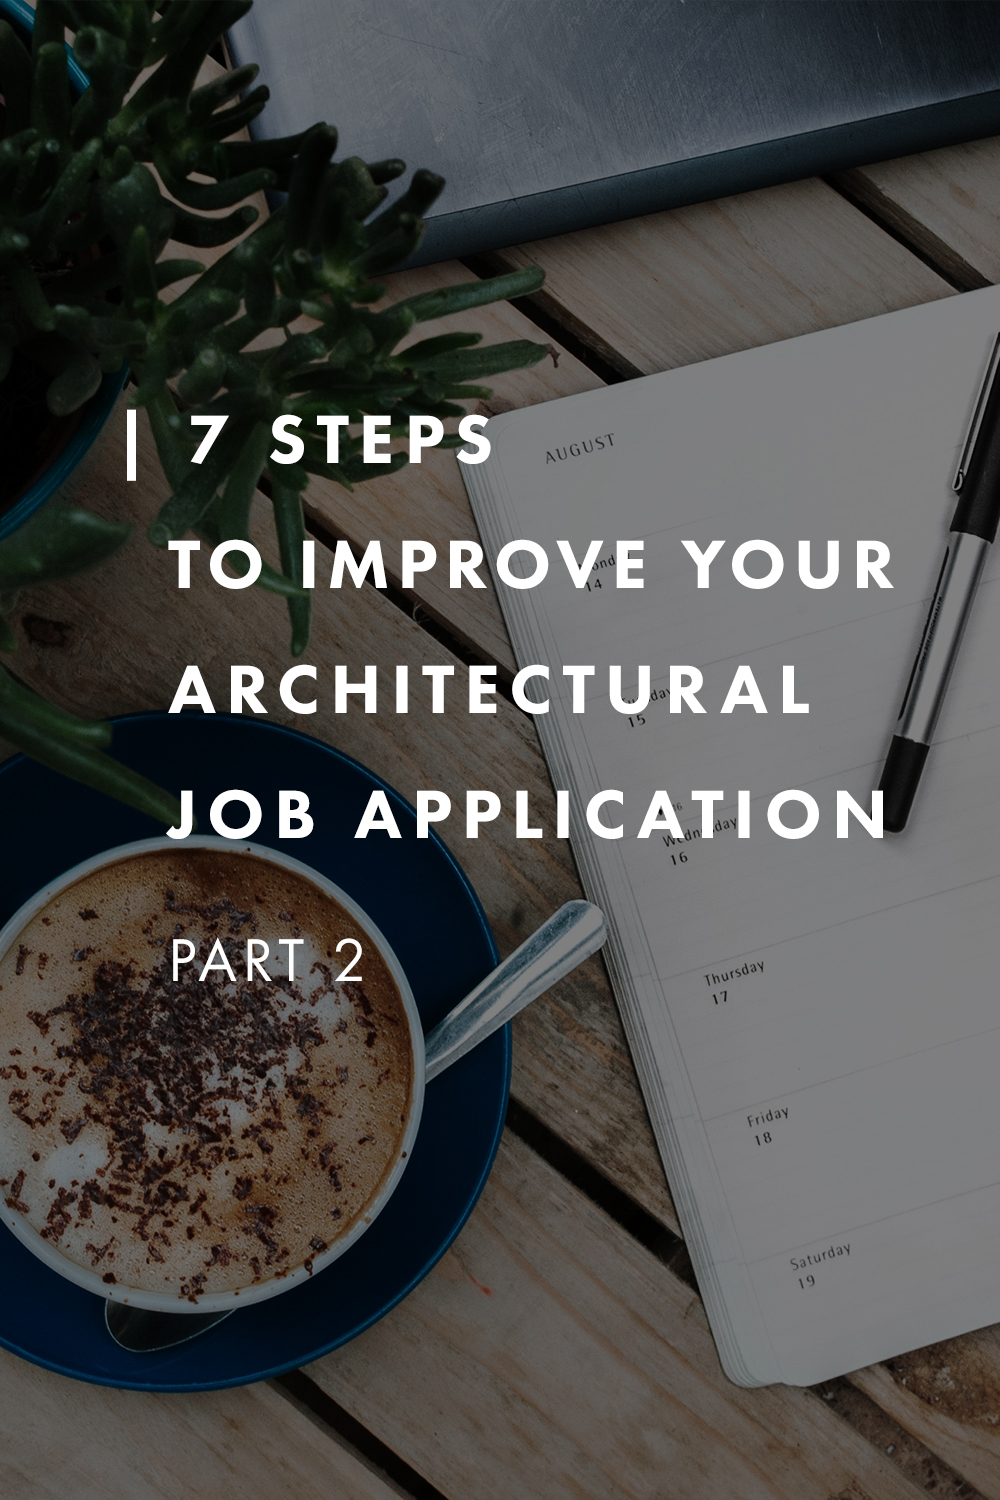 In this 2-part series, I'm going to show you the step by step process you can take to show them your true value throughout your job application. It'd be super helpful if you go read Part 1 first, so you can follow the journey from the start.